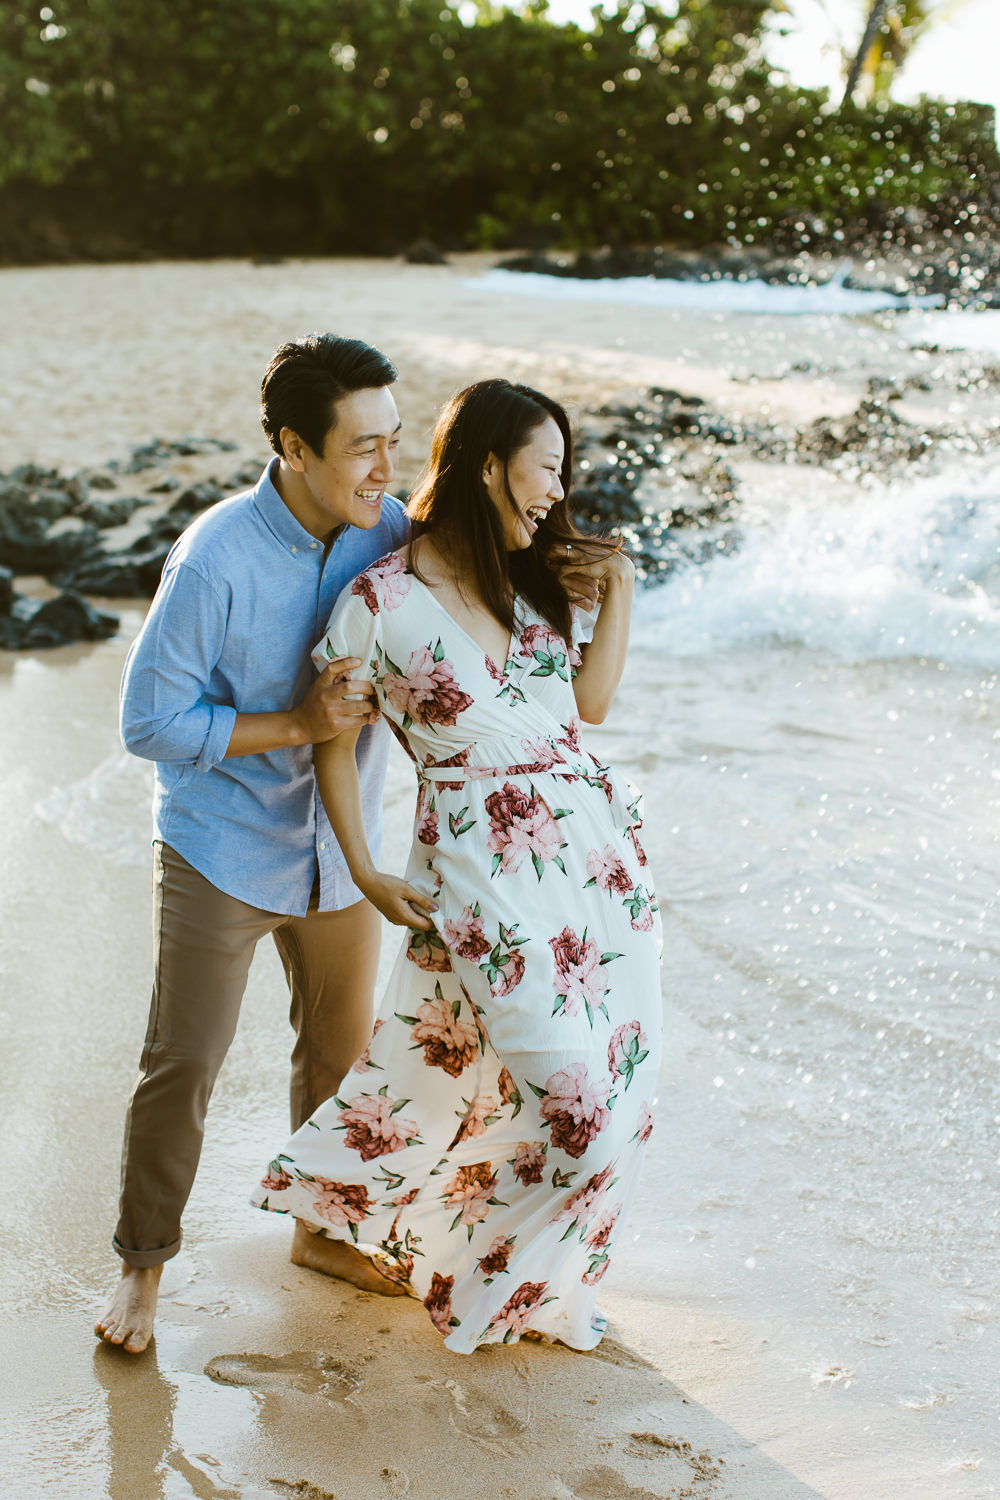 couples_engagement_photos_wailea_maui-8.jpg